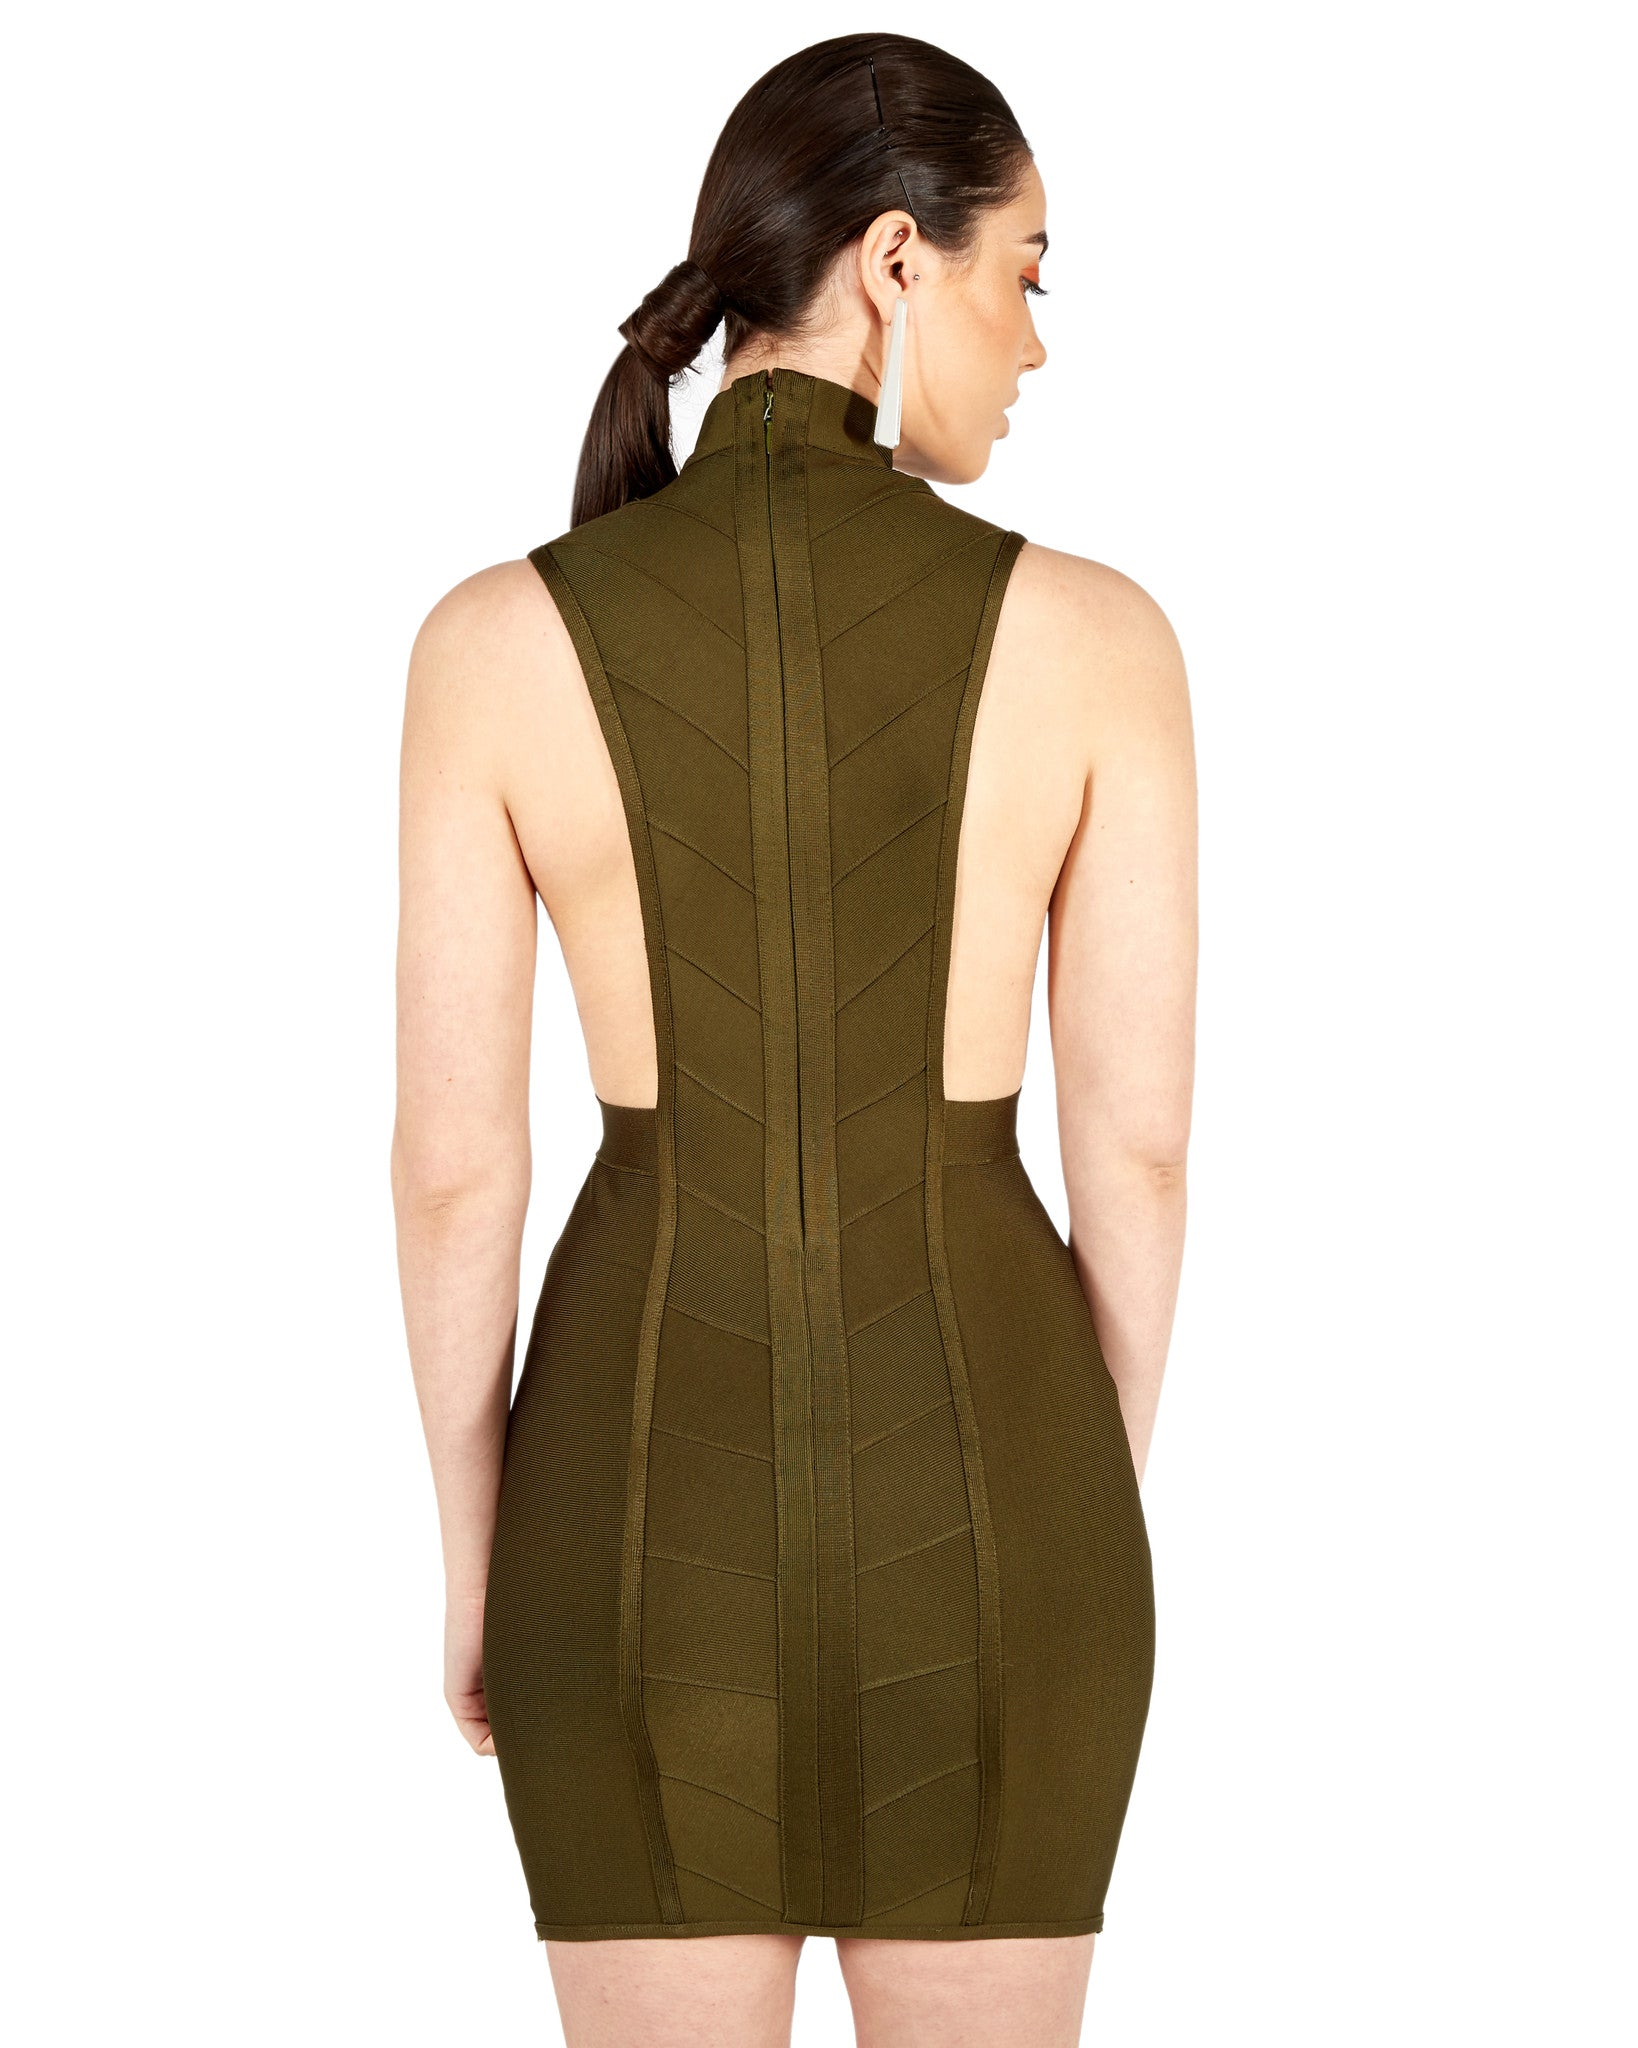 Atiyah Woven Bandage dress in Deep Khaki